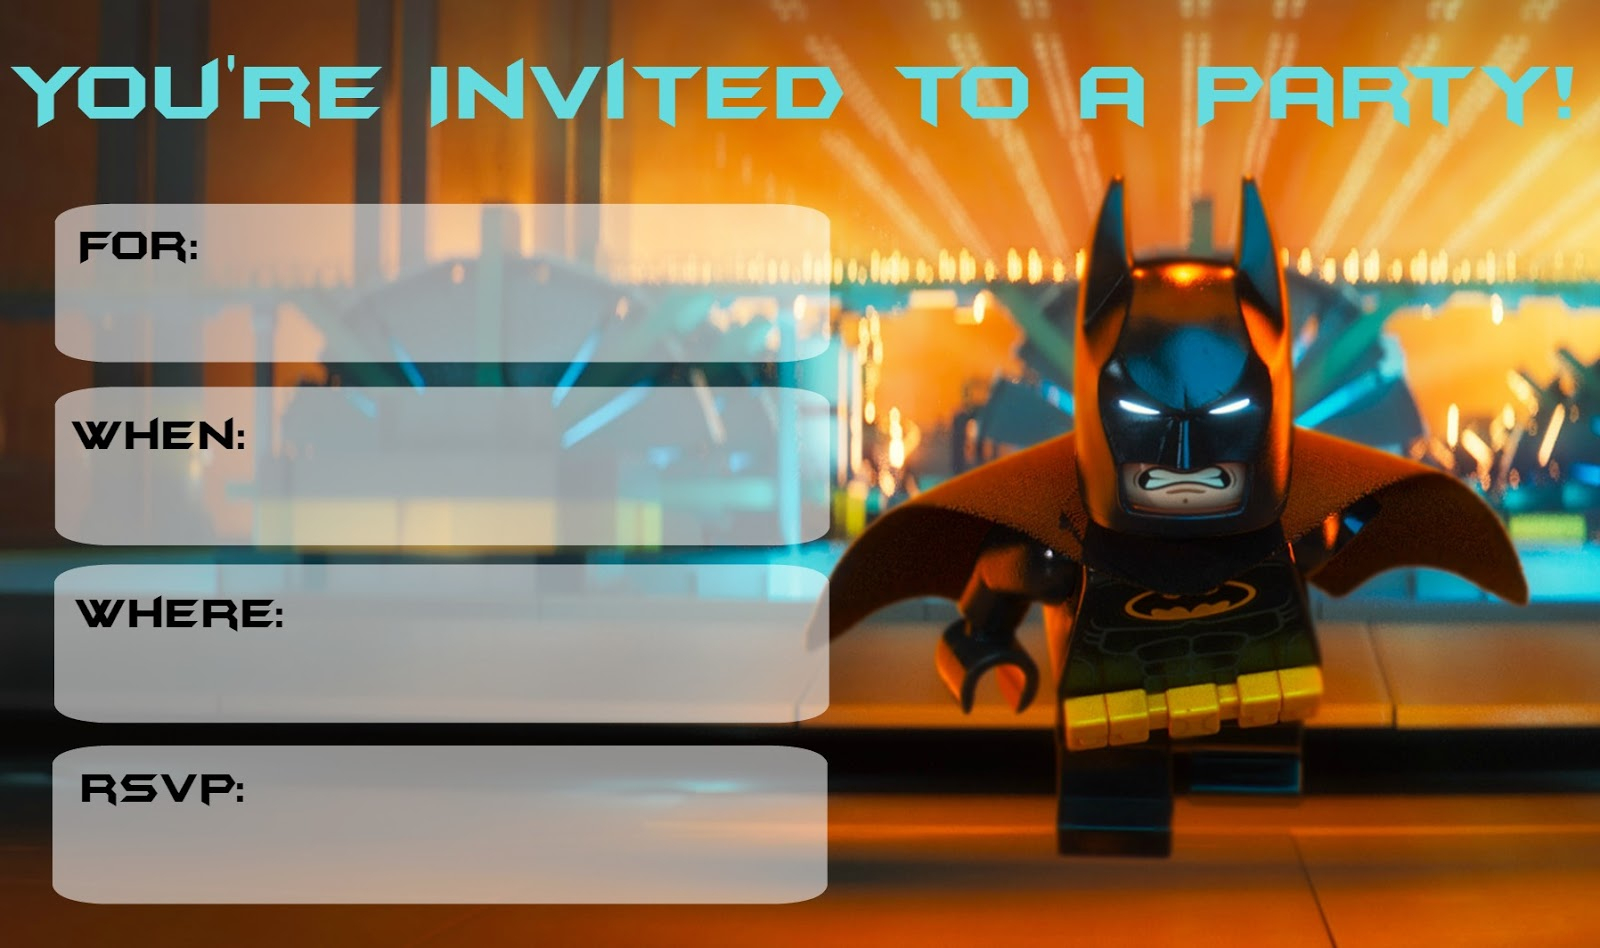 Lego Batman Binvitation Superb Lego Batman Party Invitations Free - Lego Batman Invitations Free Printable